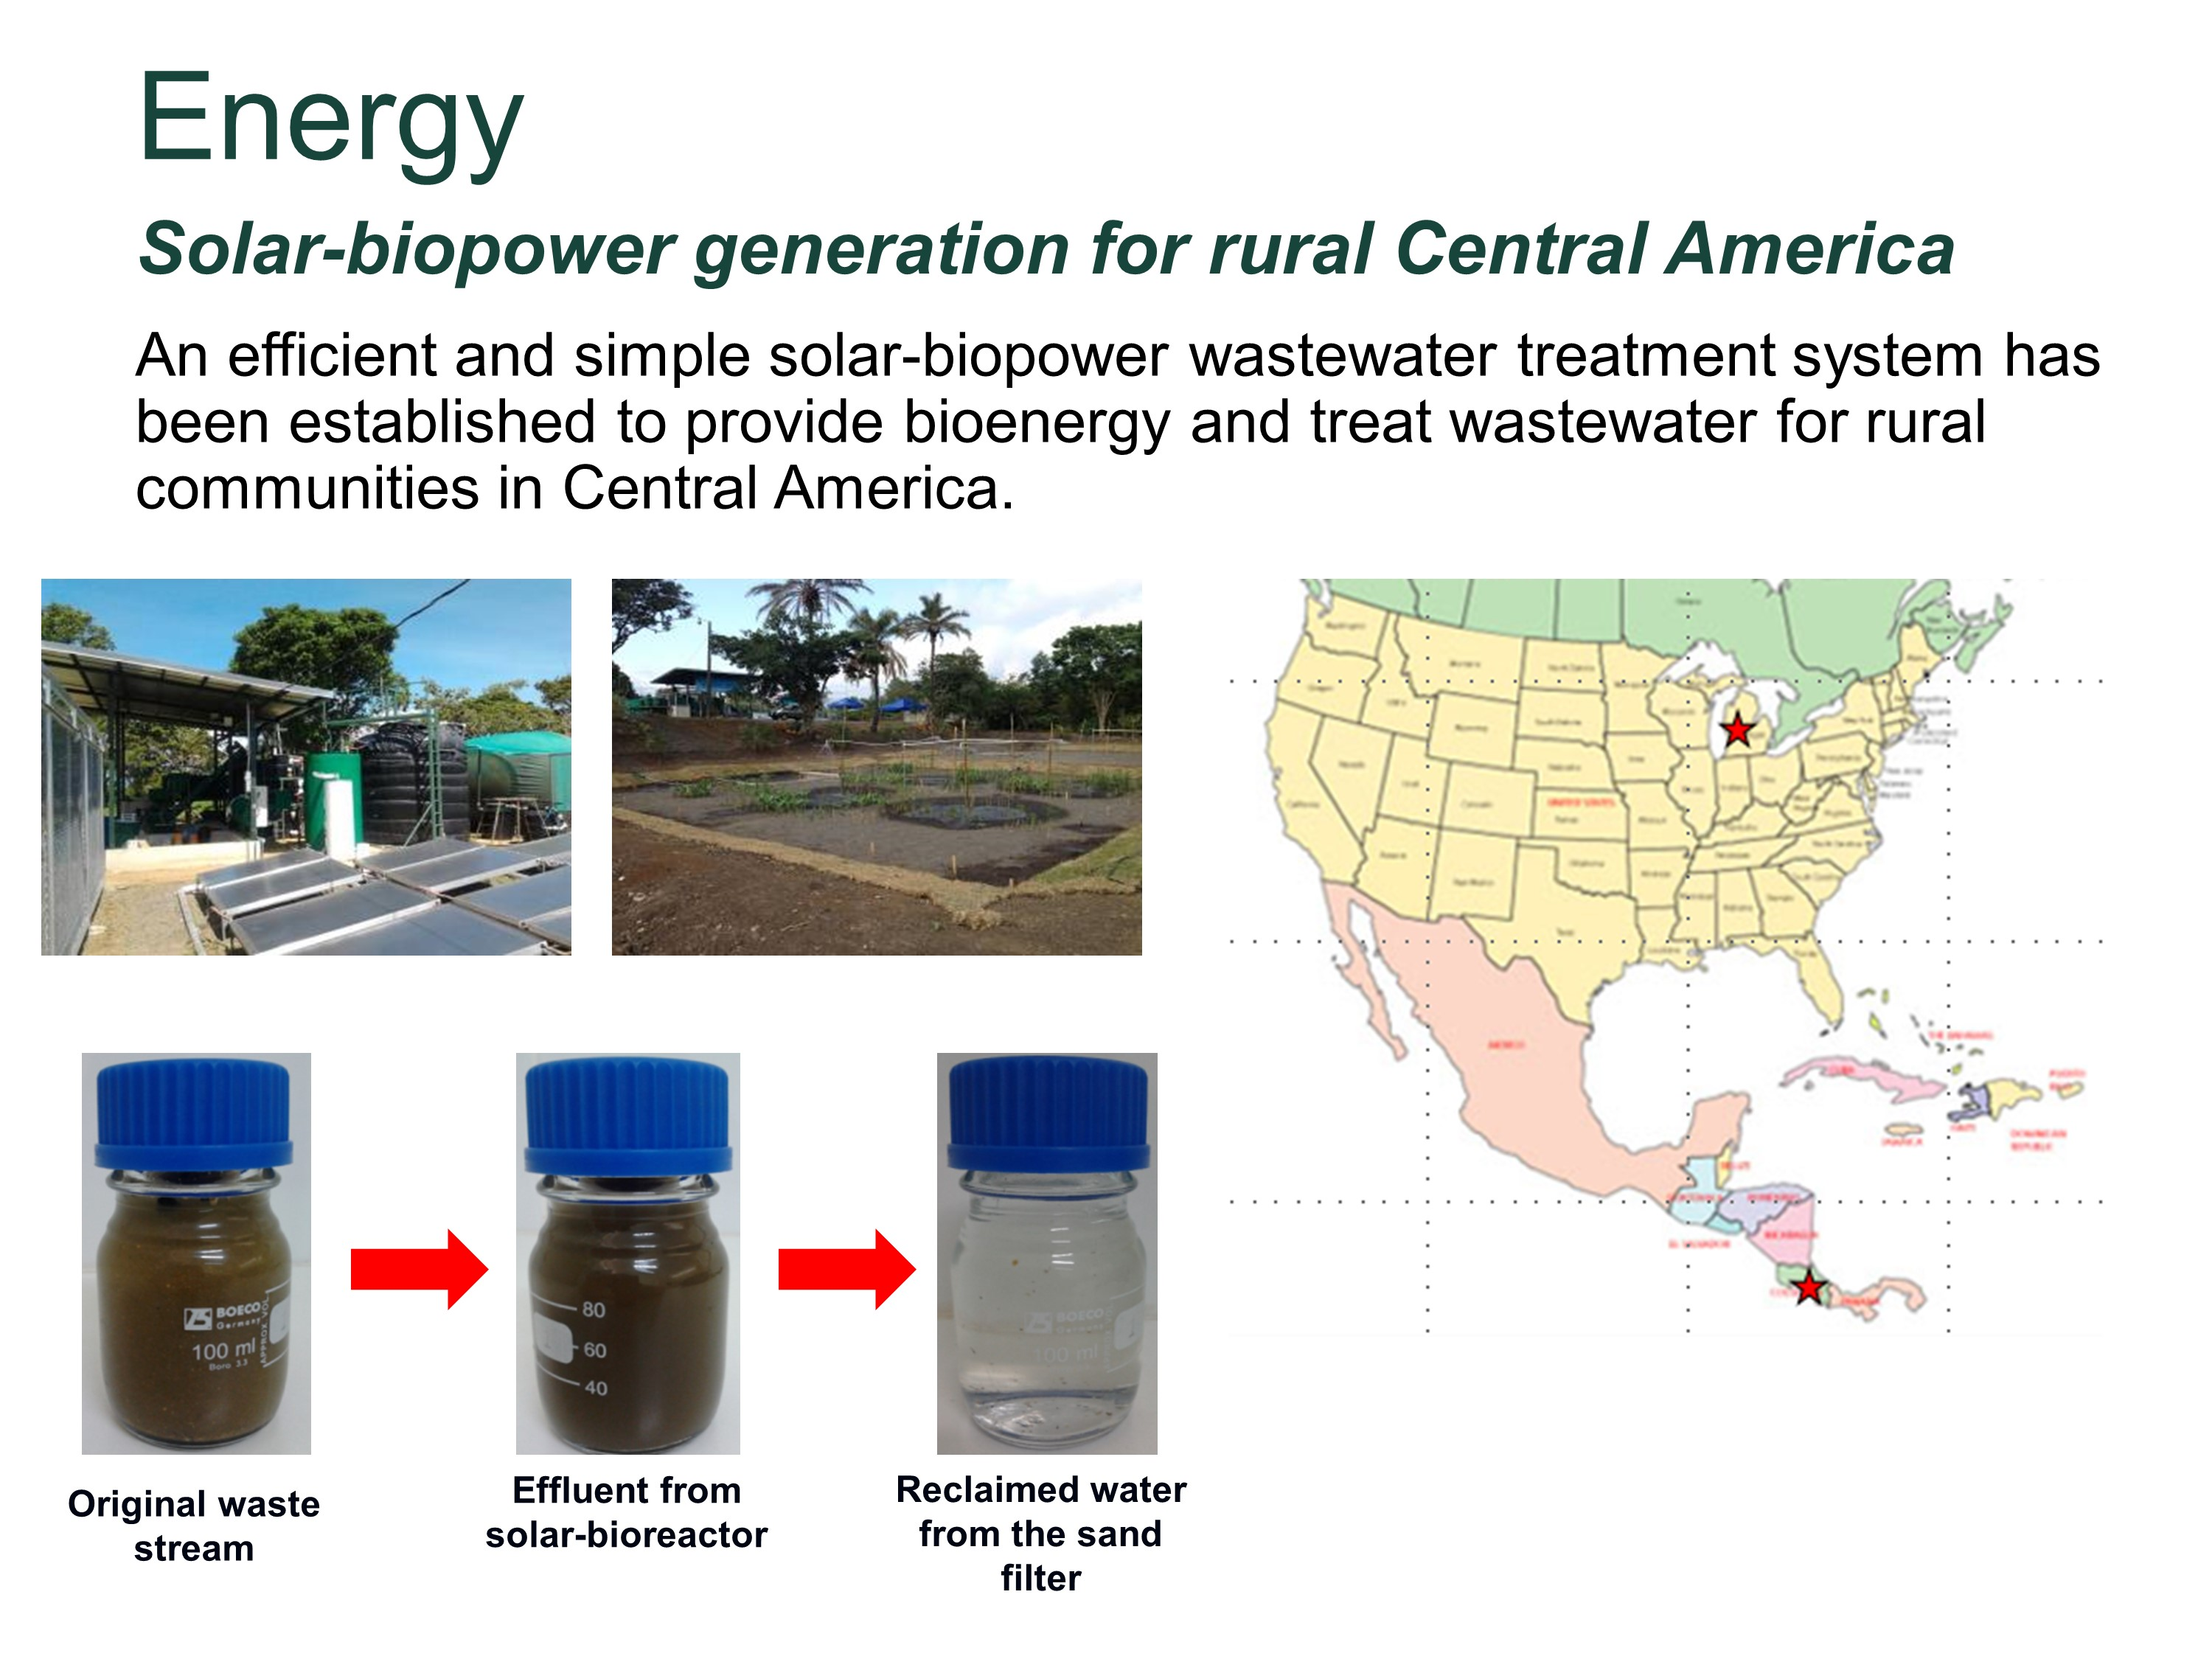 Solar-biopower generation for rural Central America